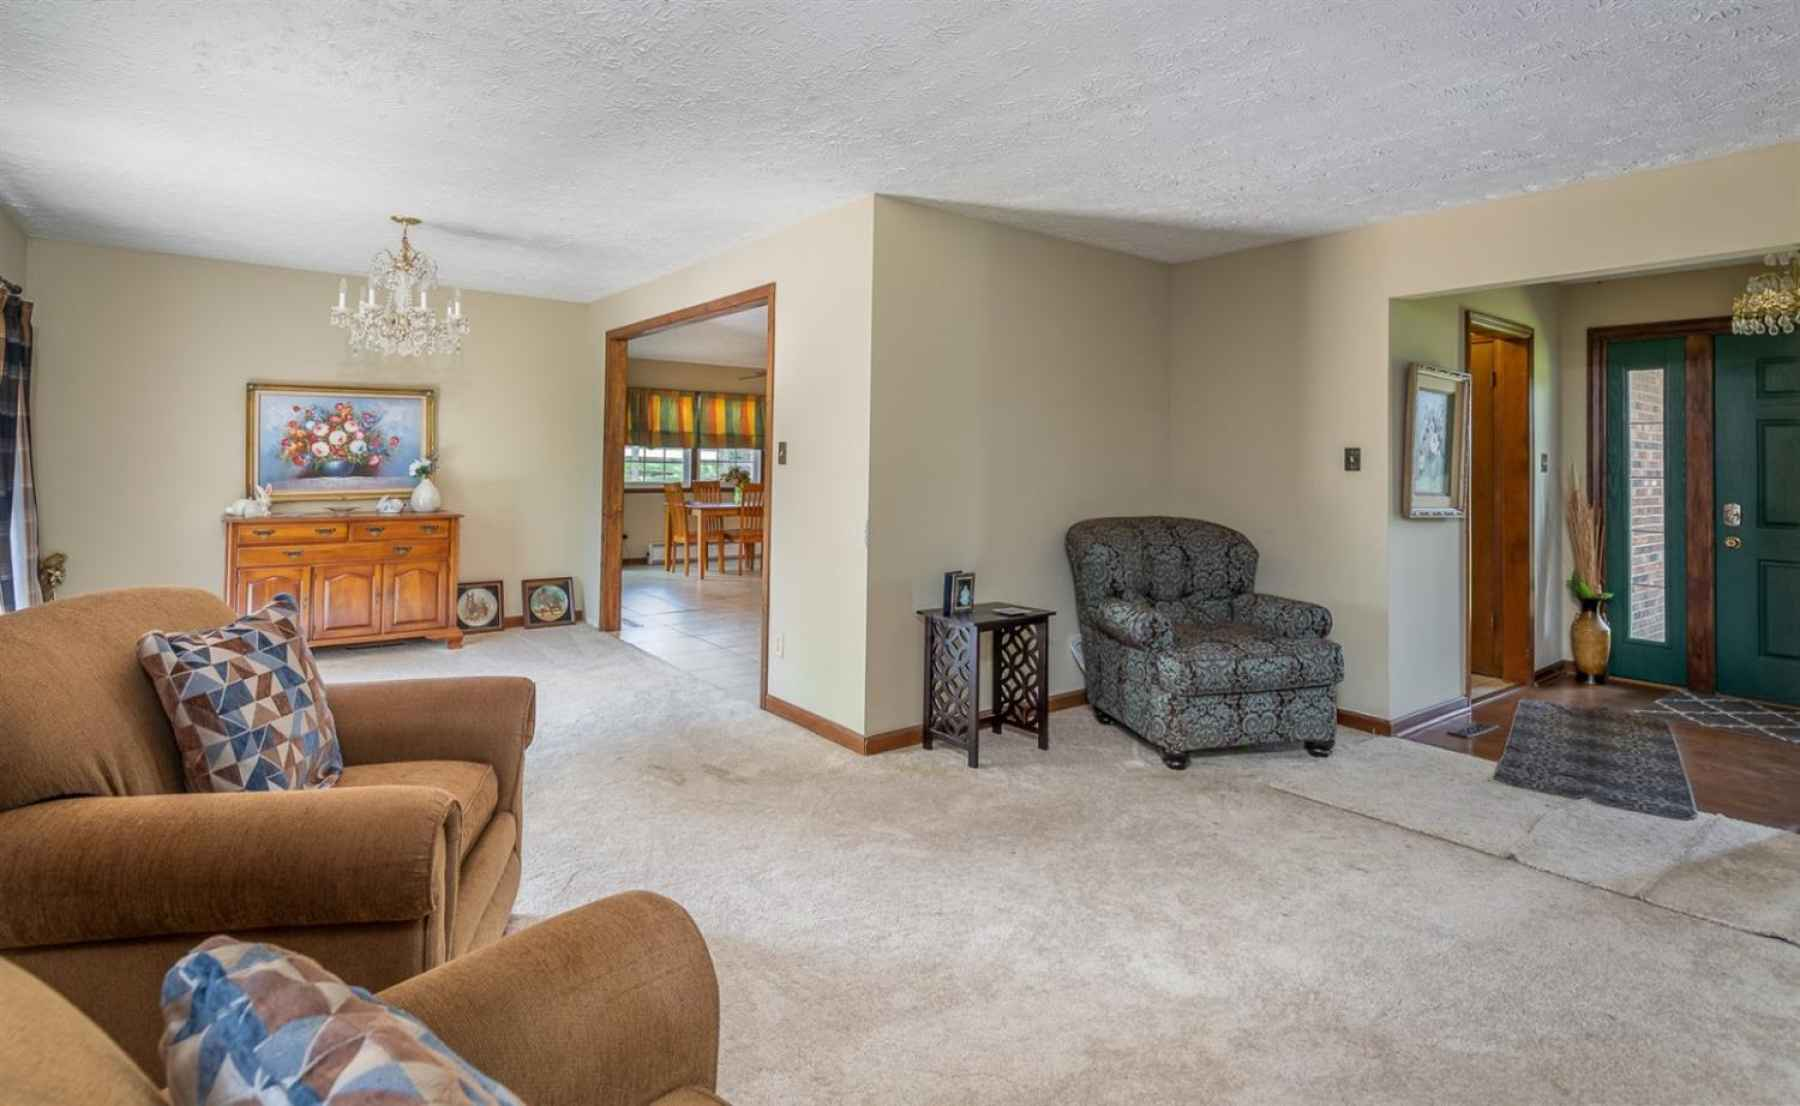 The first floor houses a large living room/dining room combo with wonderful, serene views of the land